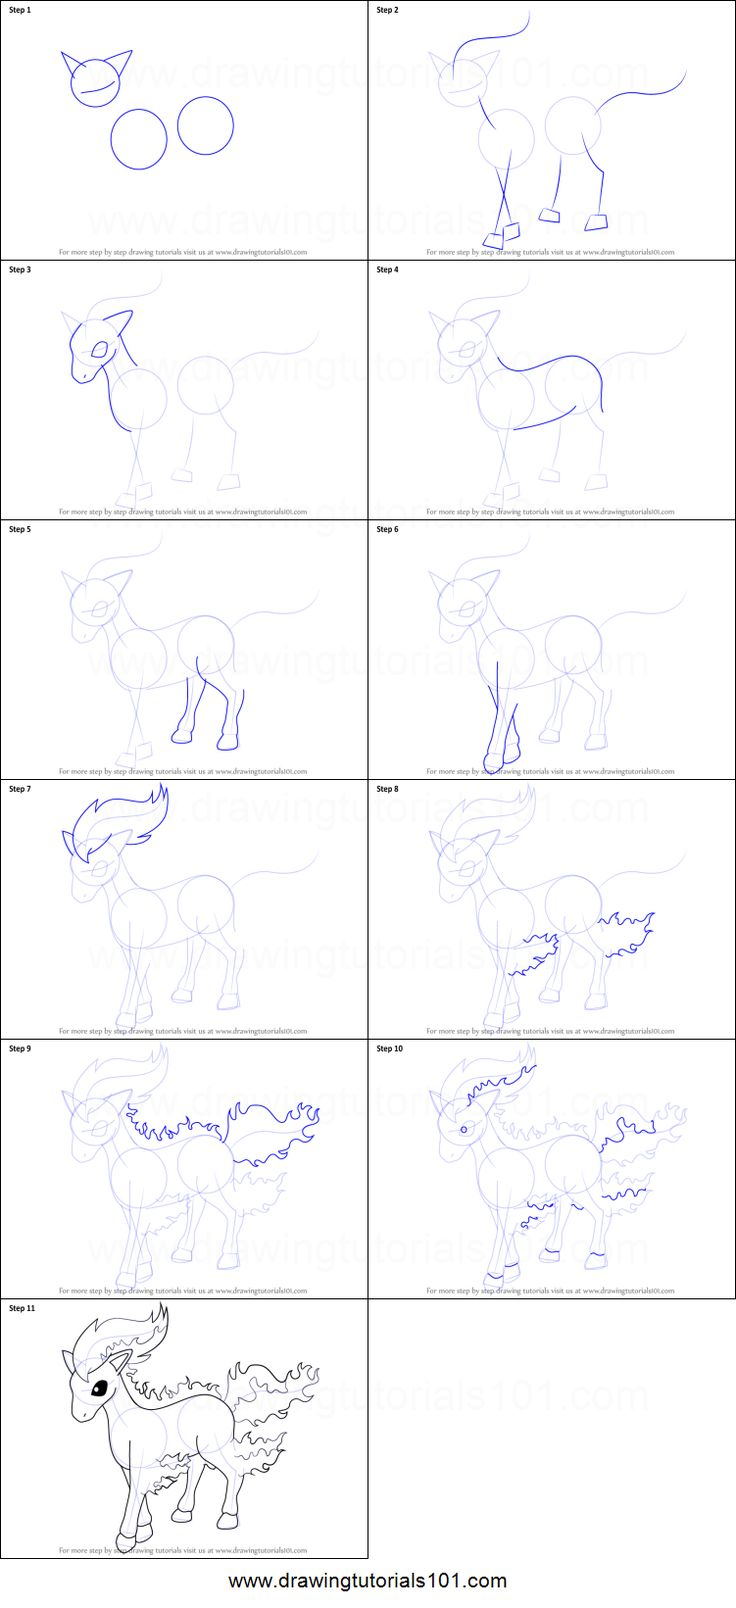 How to Draw Ponyta from Pokemon Printable Drawing Sheet by DrawingTutorials101.com